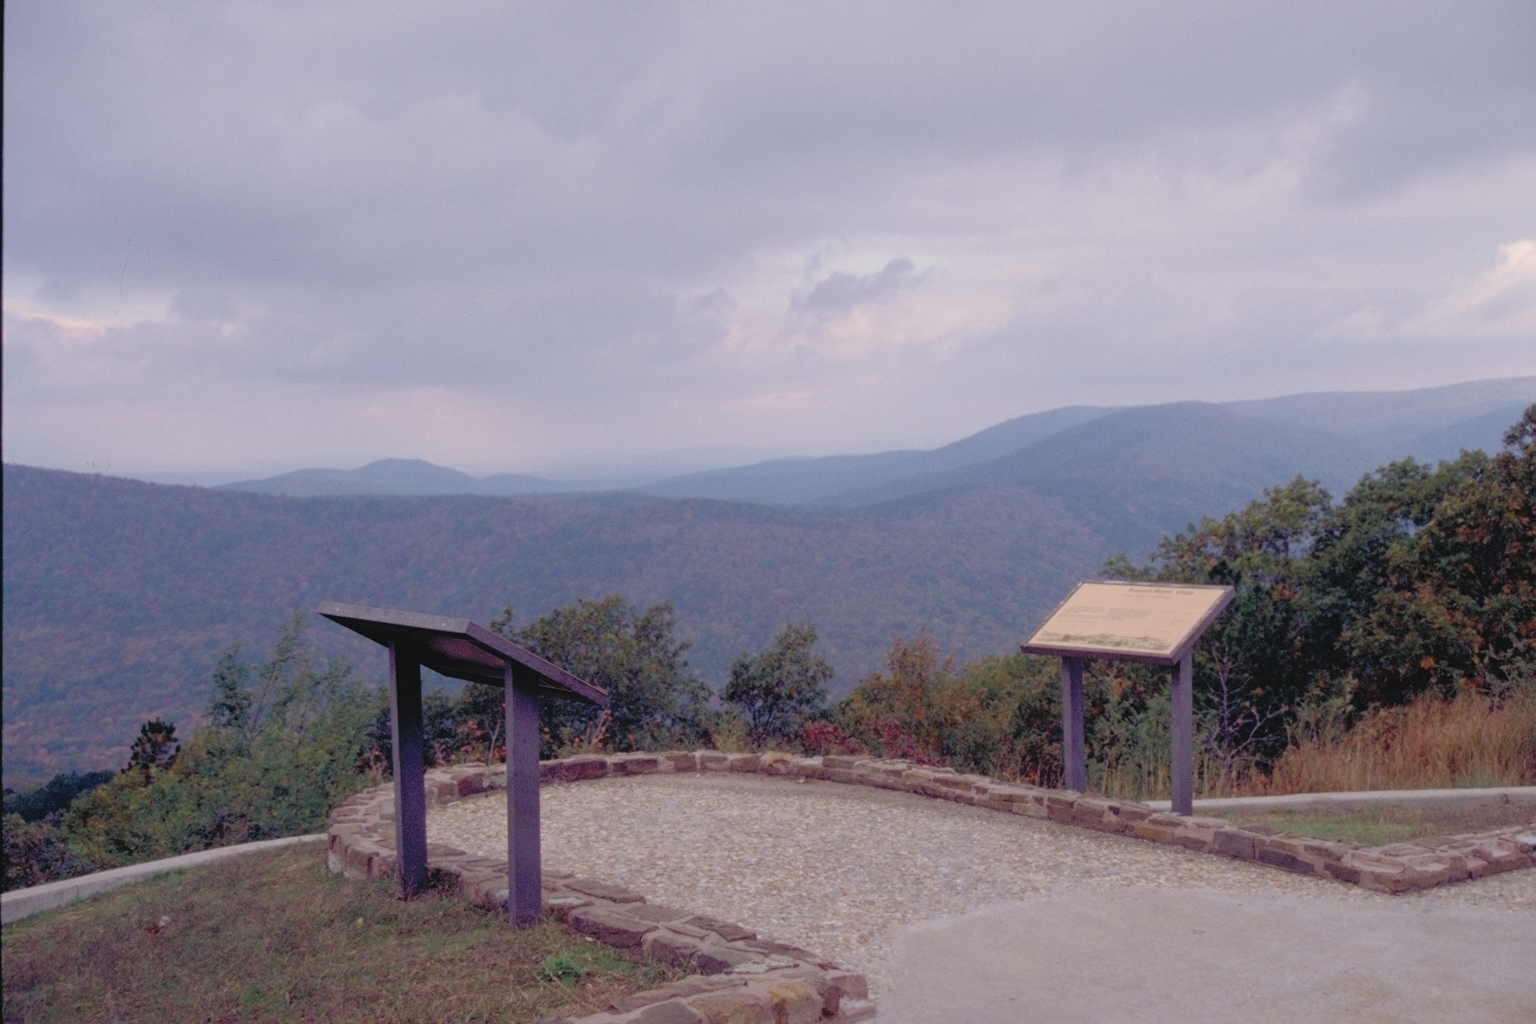 Talimena Scenic Drive - All Photos | America's Byways